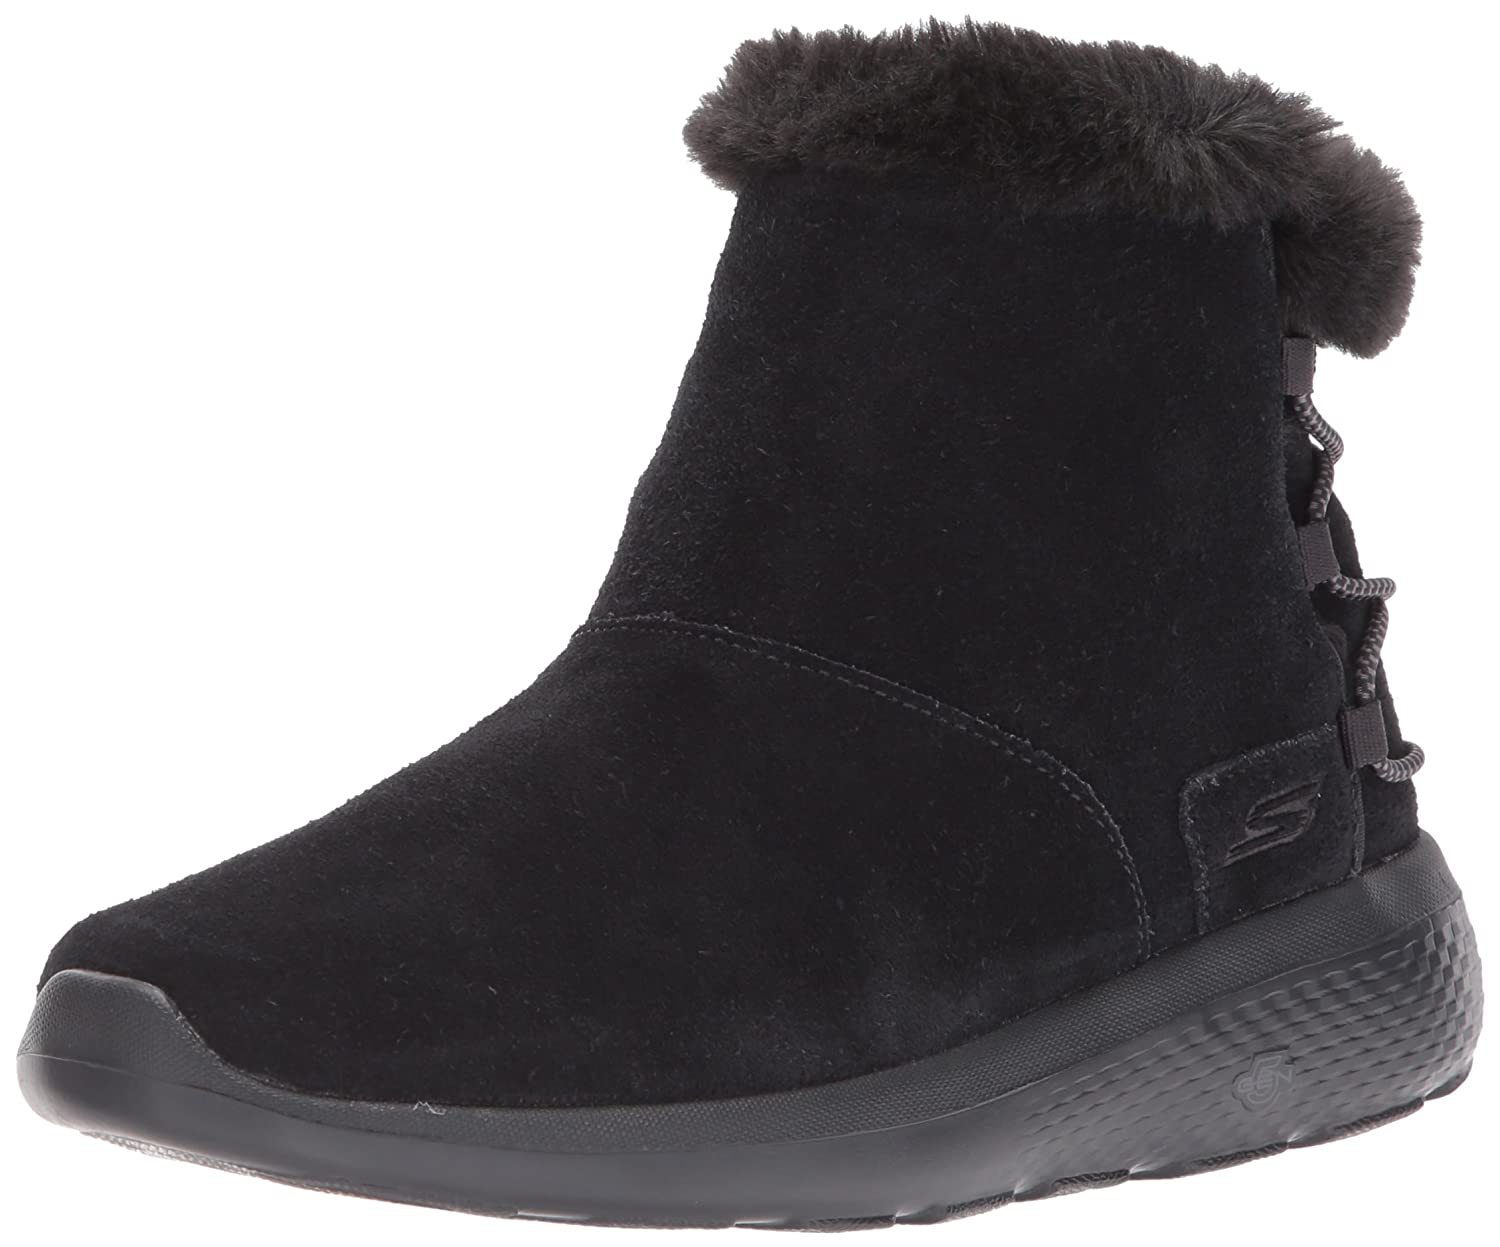 Skechers Damen On-The-go City 2 Stiefel Schwarz (schwarz)